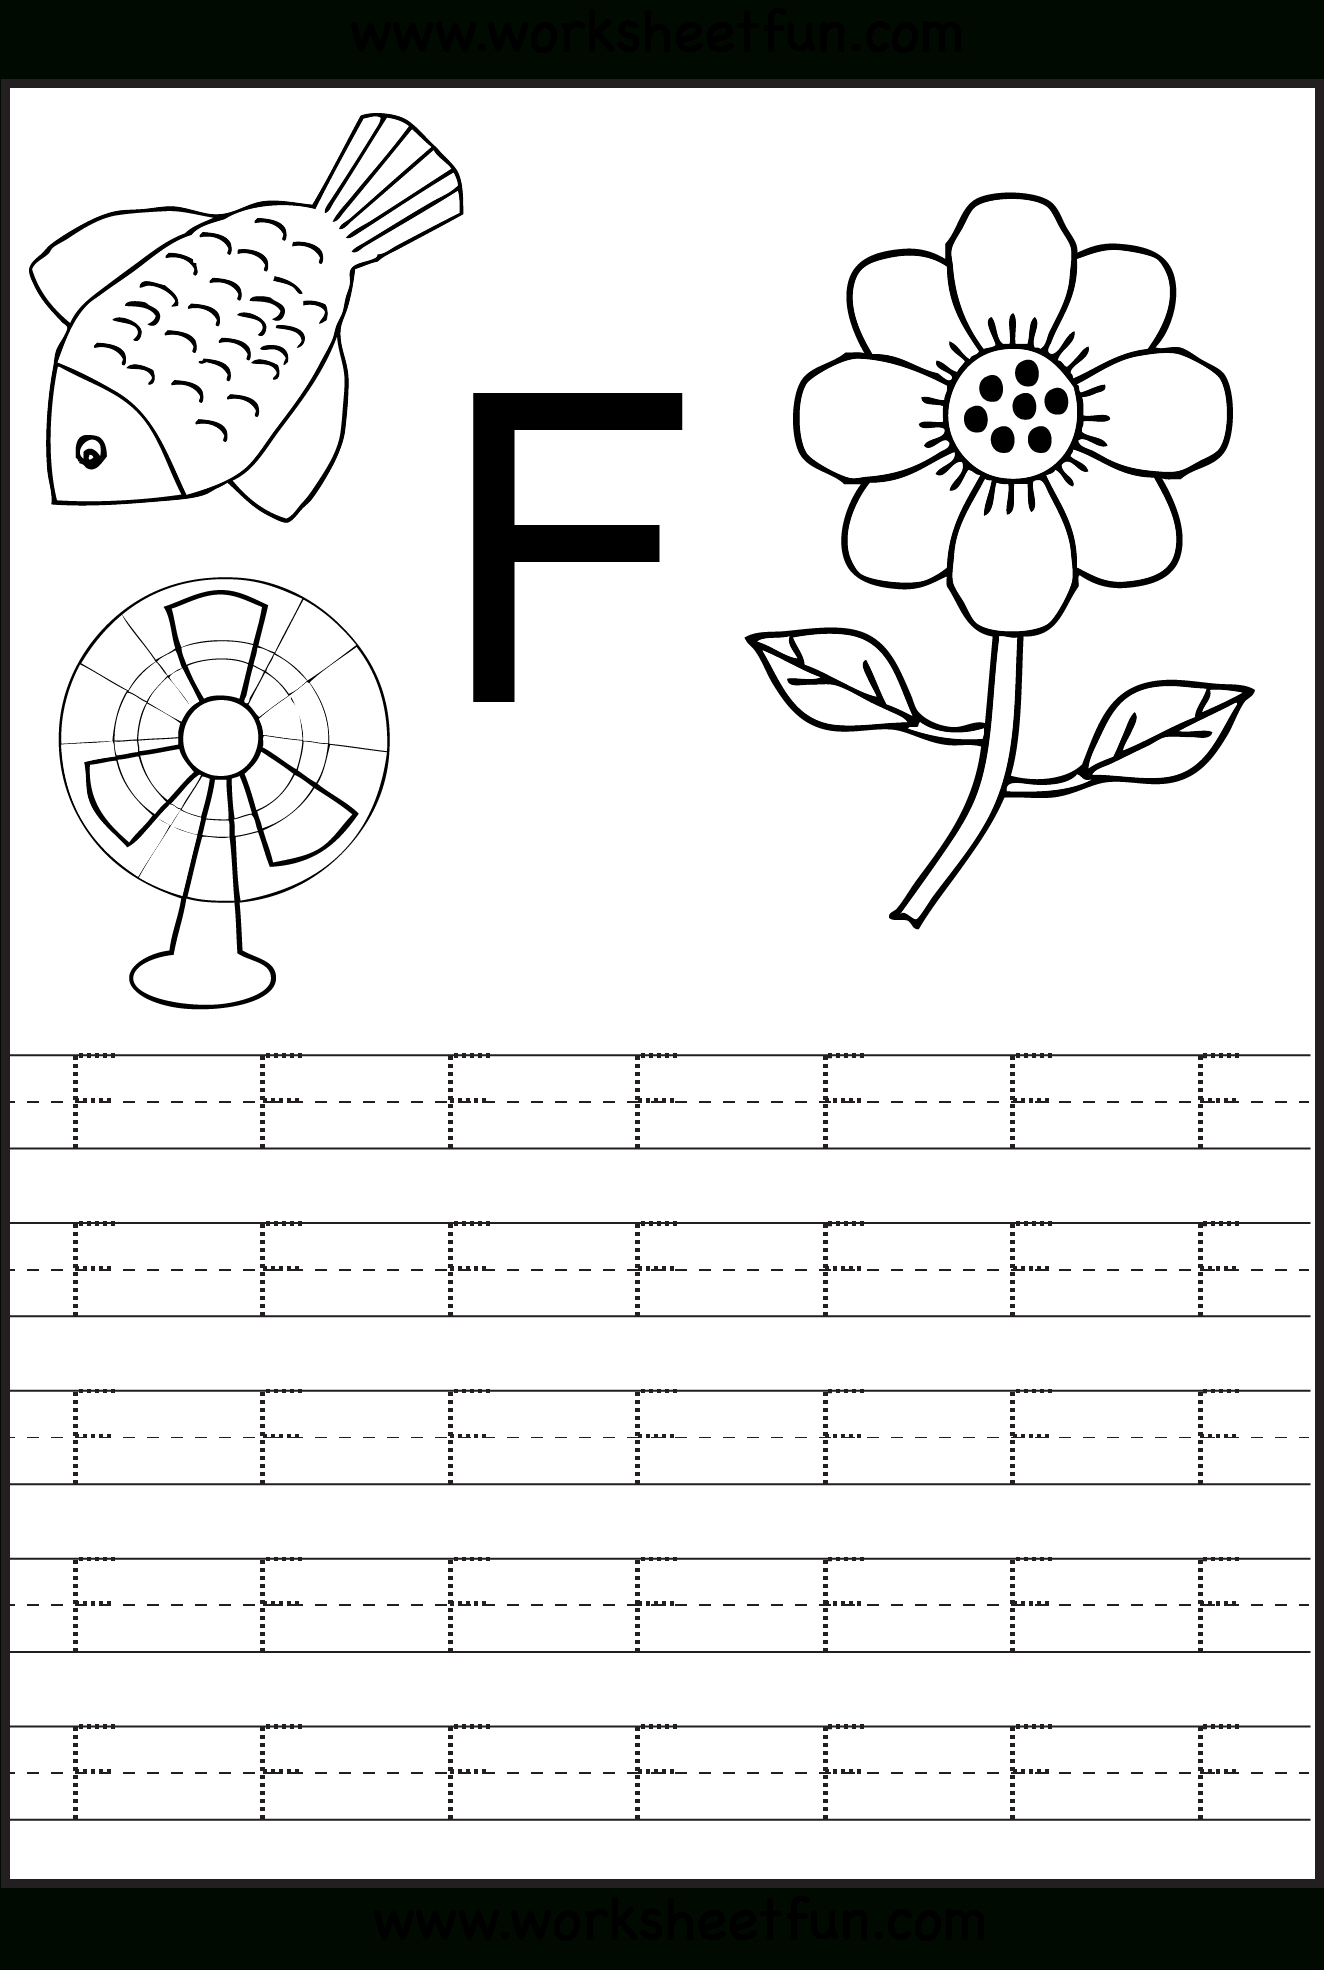 Capital Letter D Coloring Pages Maze Inside Cursive Within regarding Tracing Letter F Worksheets